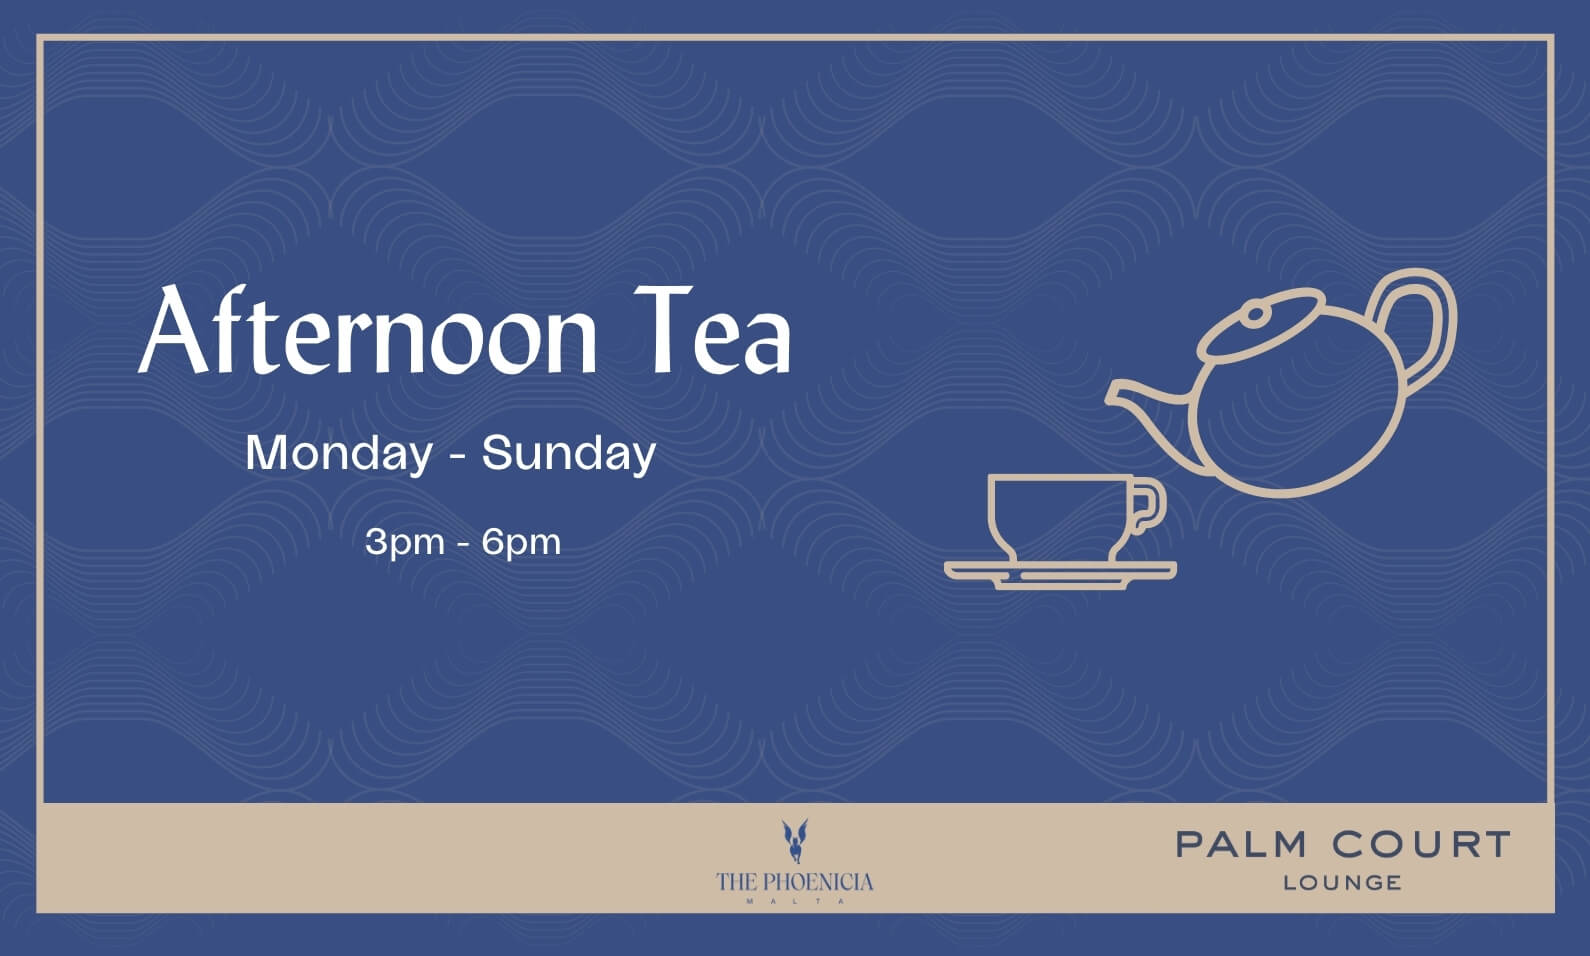 Afternoon Tea in the Palm Court Lounge